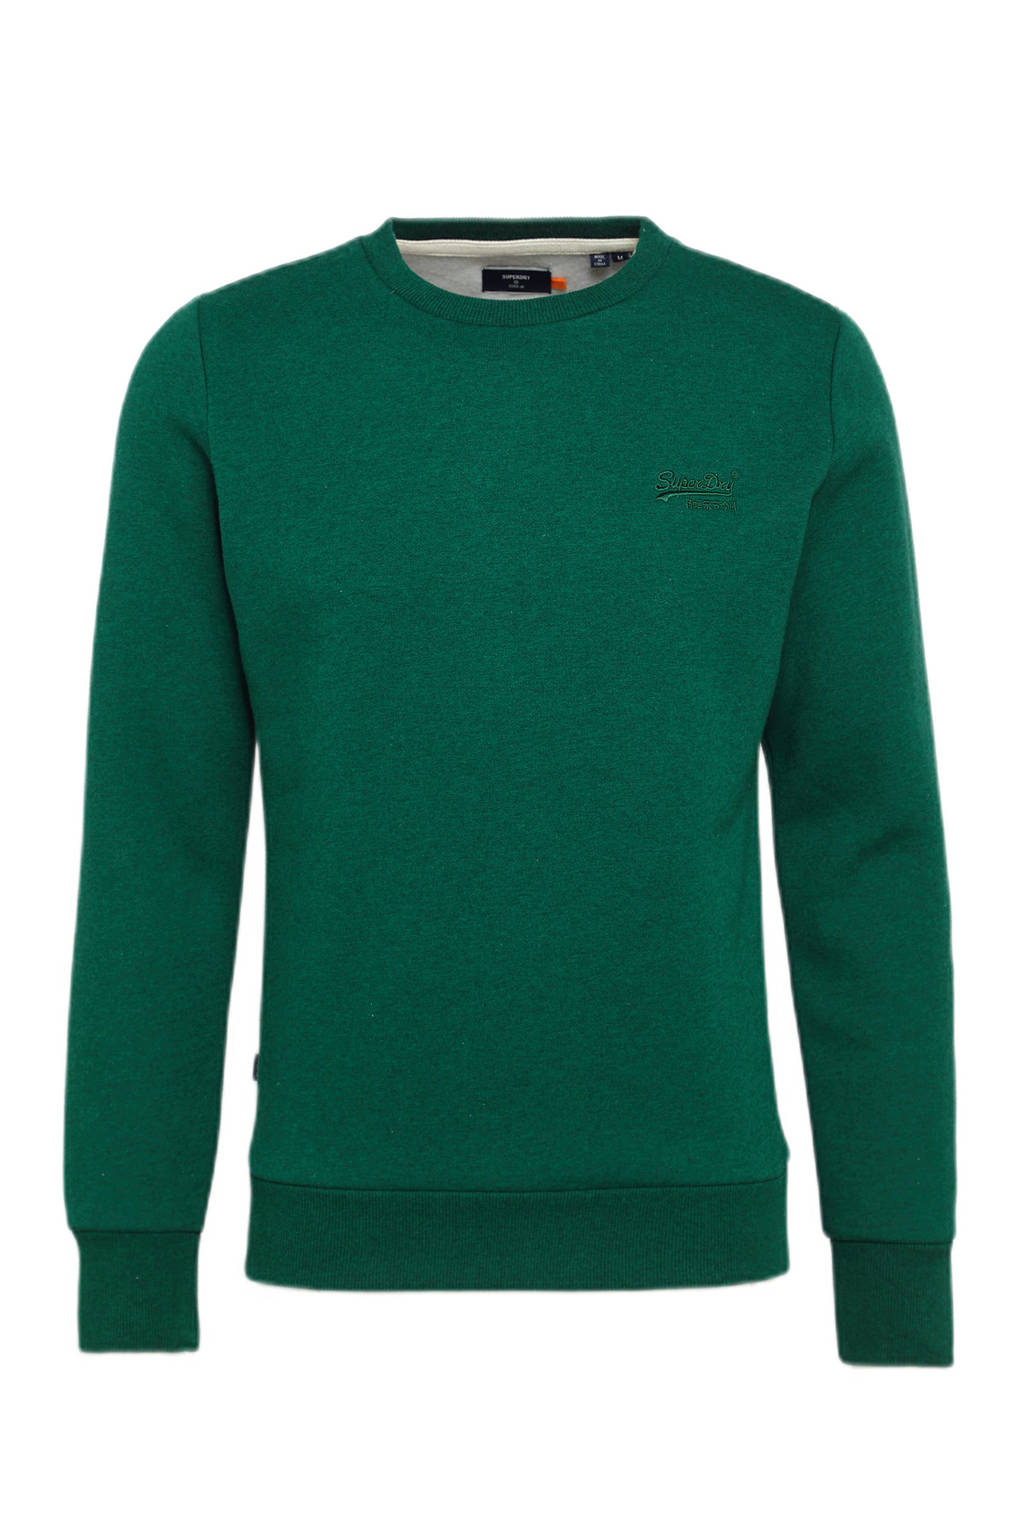 Superdry sweater forest green marl, Forest Green Marl